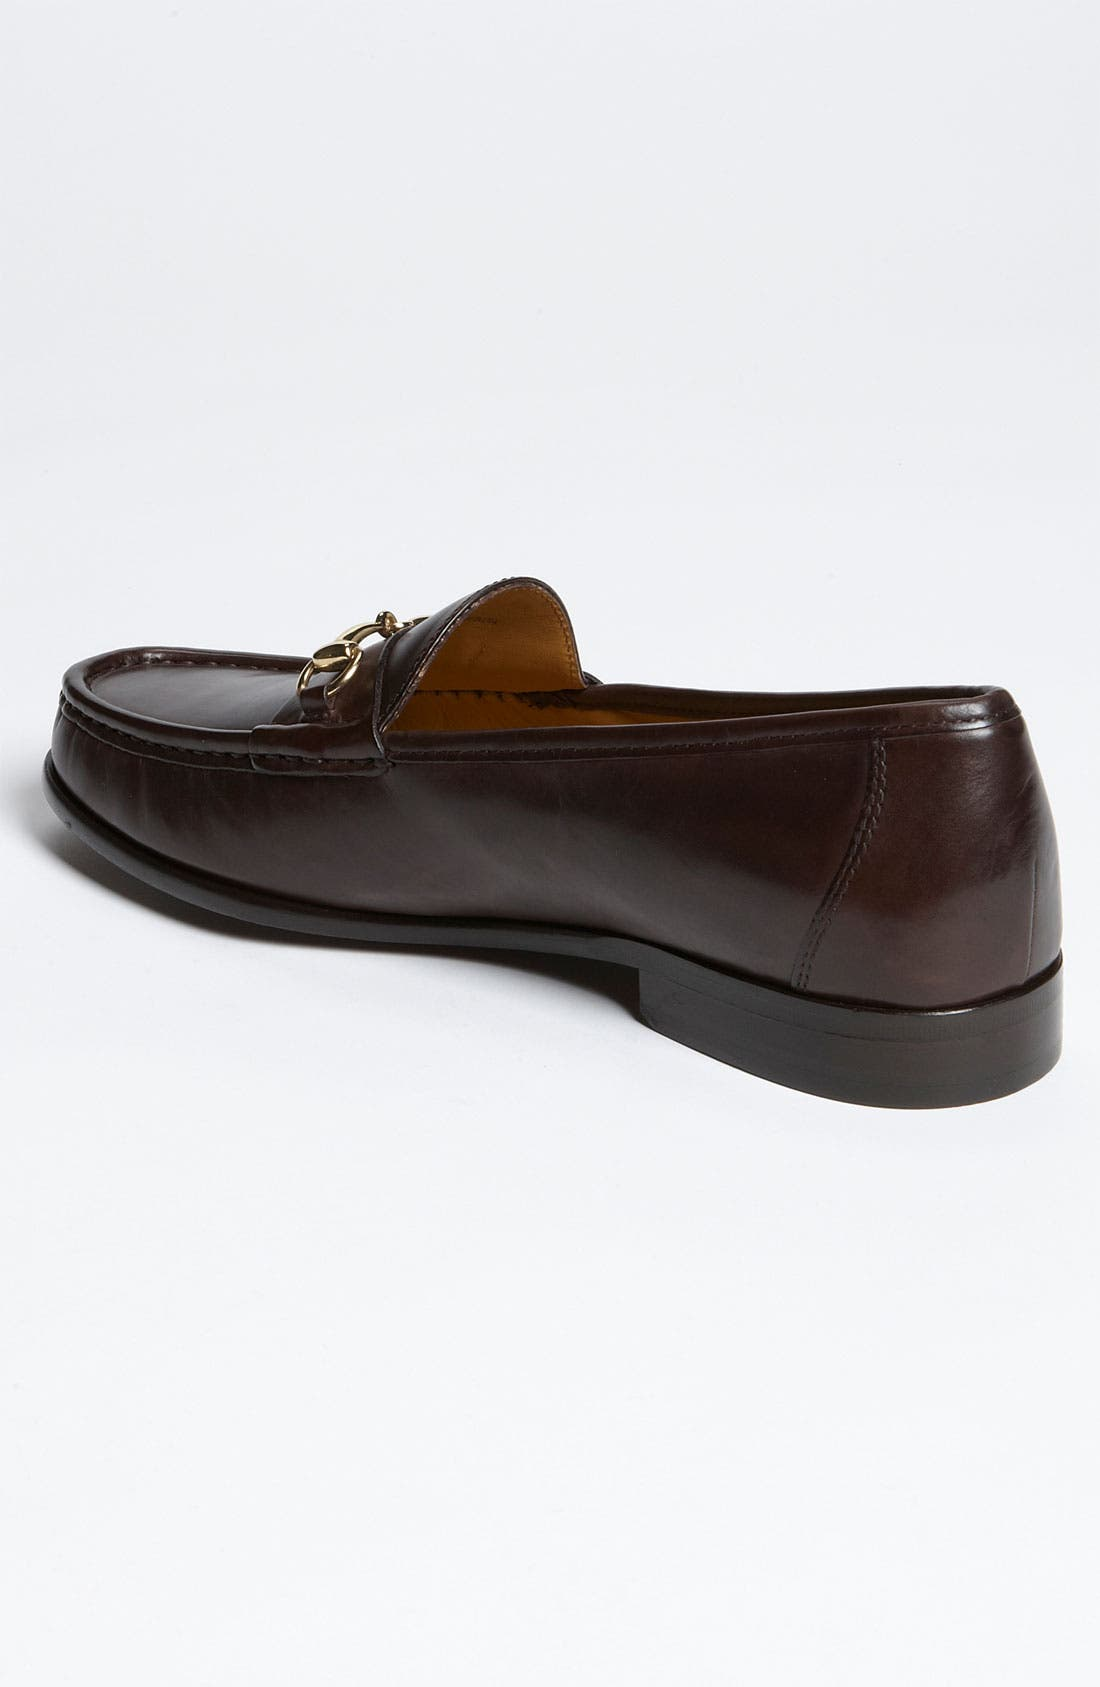 Alternate Image 2  - Cole Haan 'Emory' Loafer (Online Exclusive)